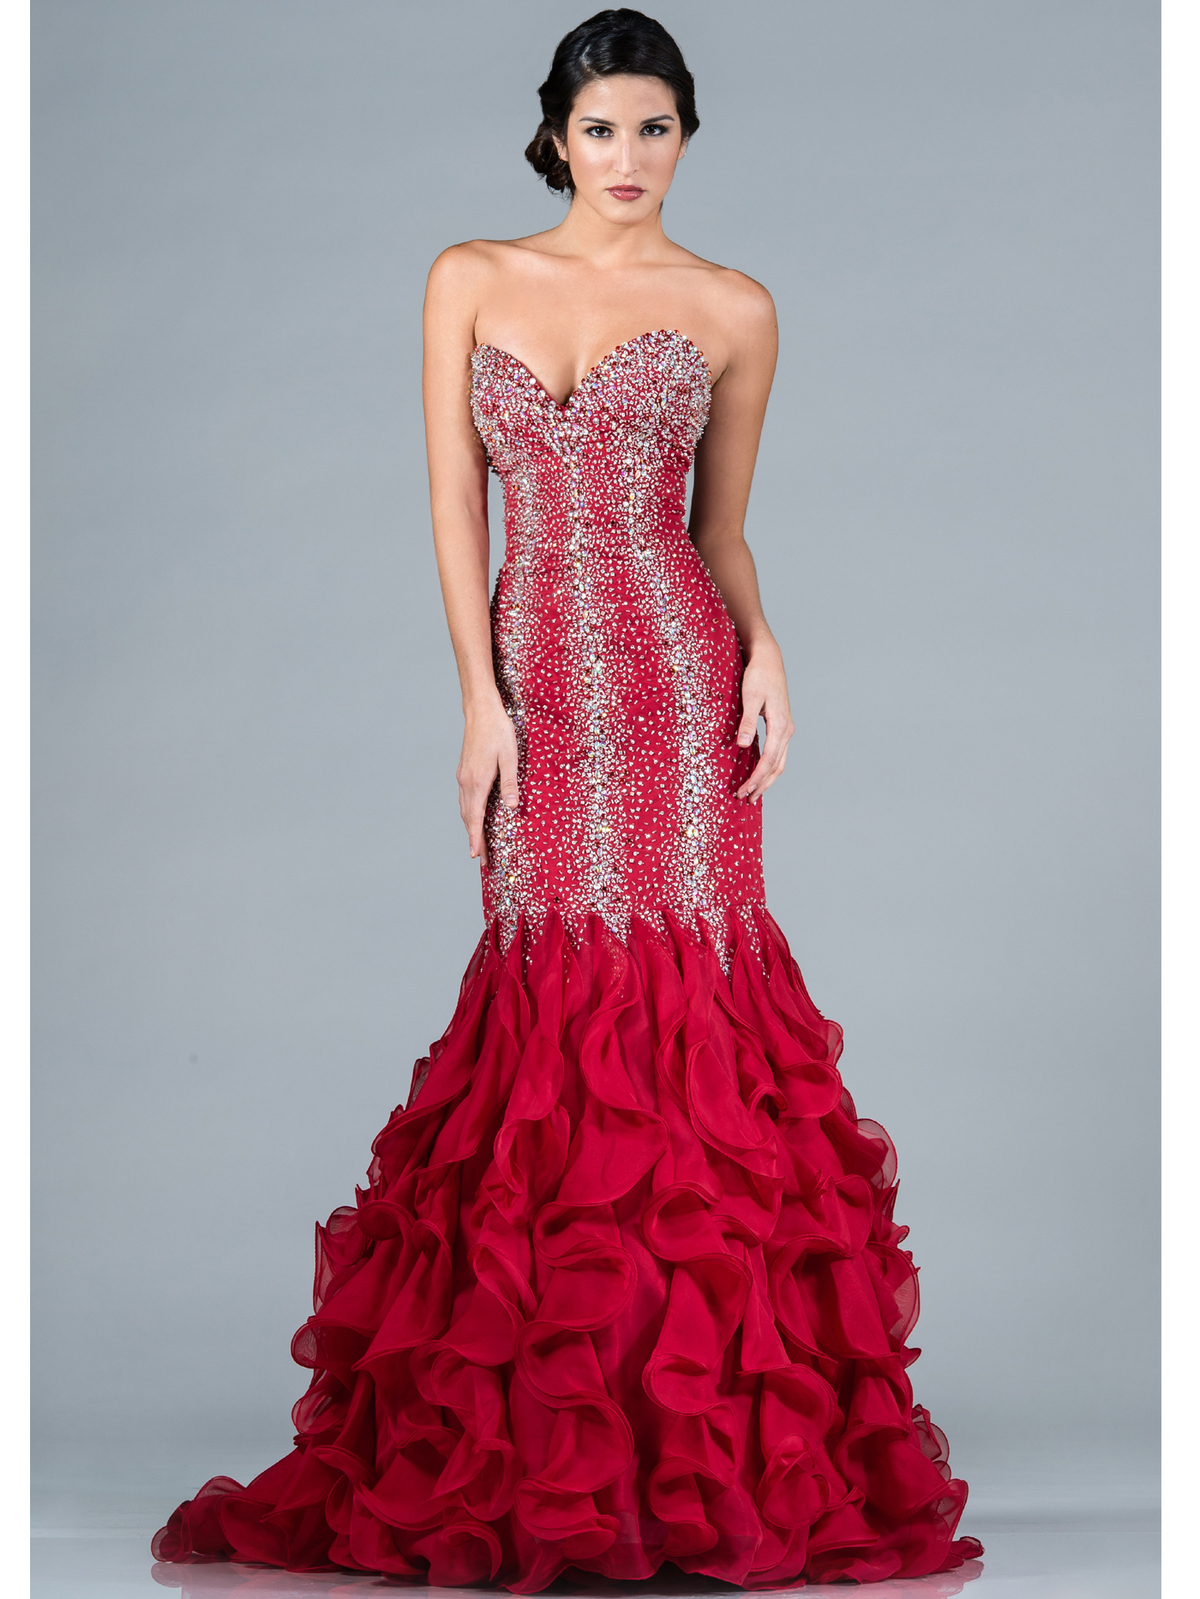 Beaded and Jeweled Mermaid Prom Dress | Sung Boutique L.A.